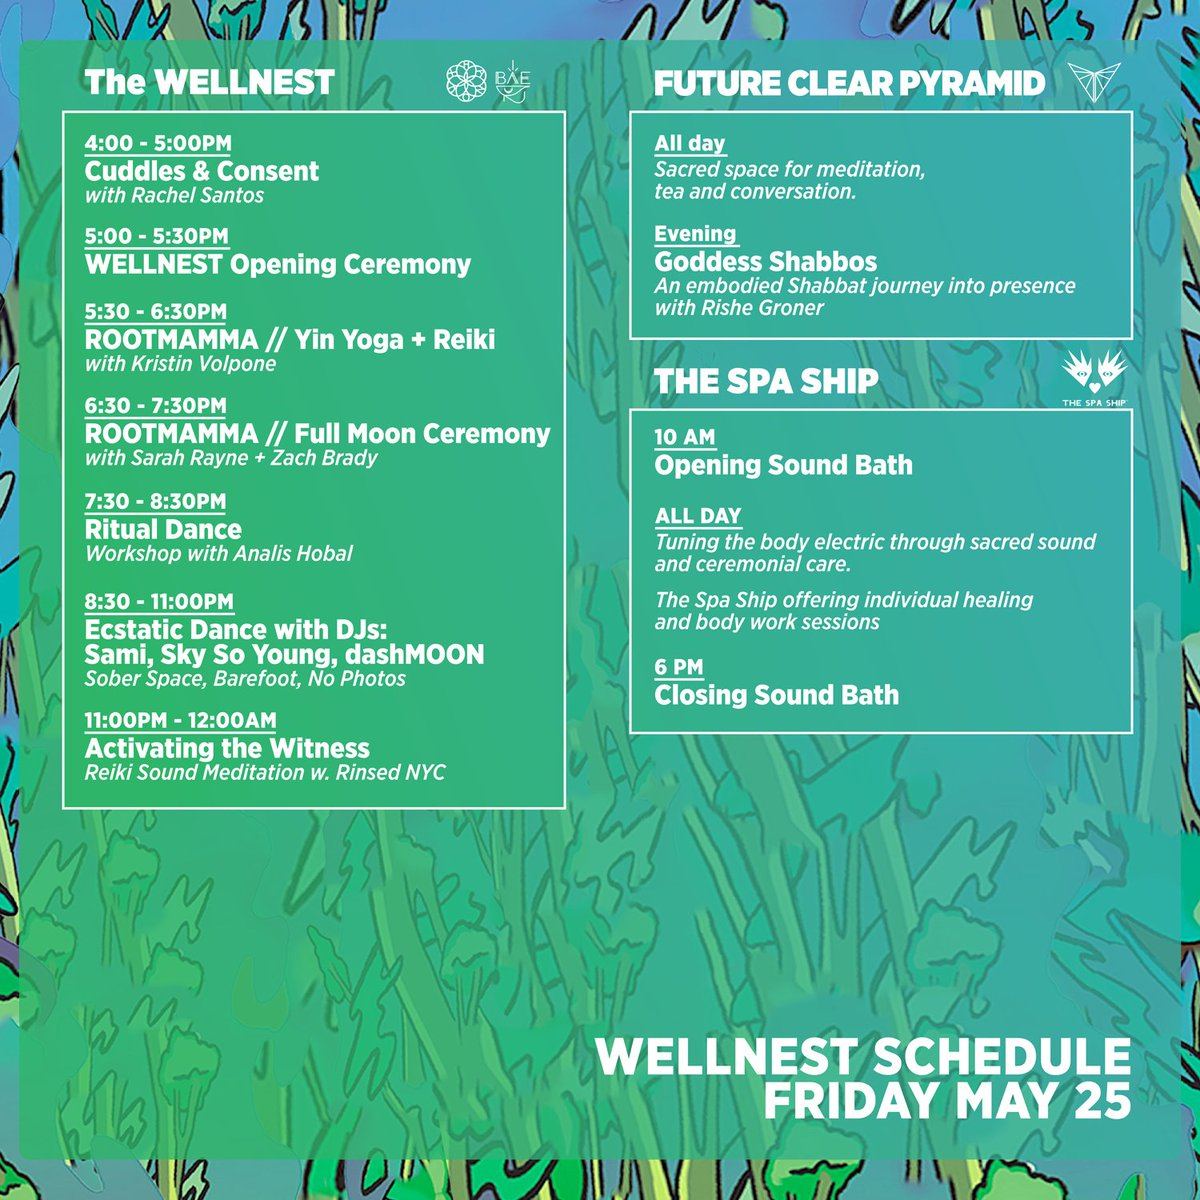 You Have The Set Times The Festival Map And The Activities Schedule Heres The Elementslakewood Well Nest Schedule For Three Full Days Of Workshop And